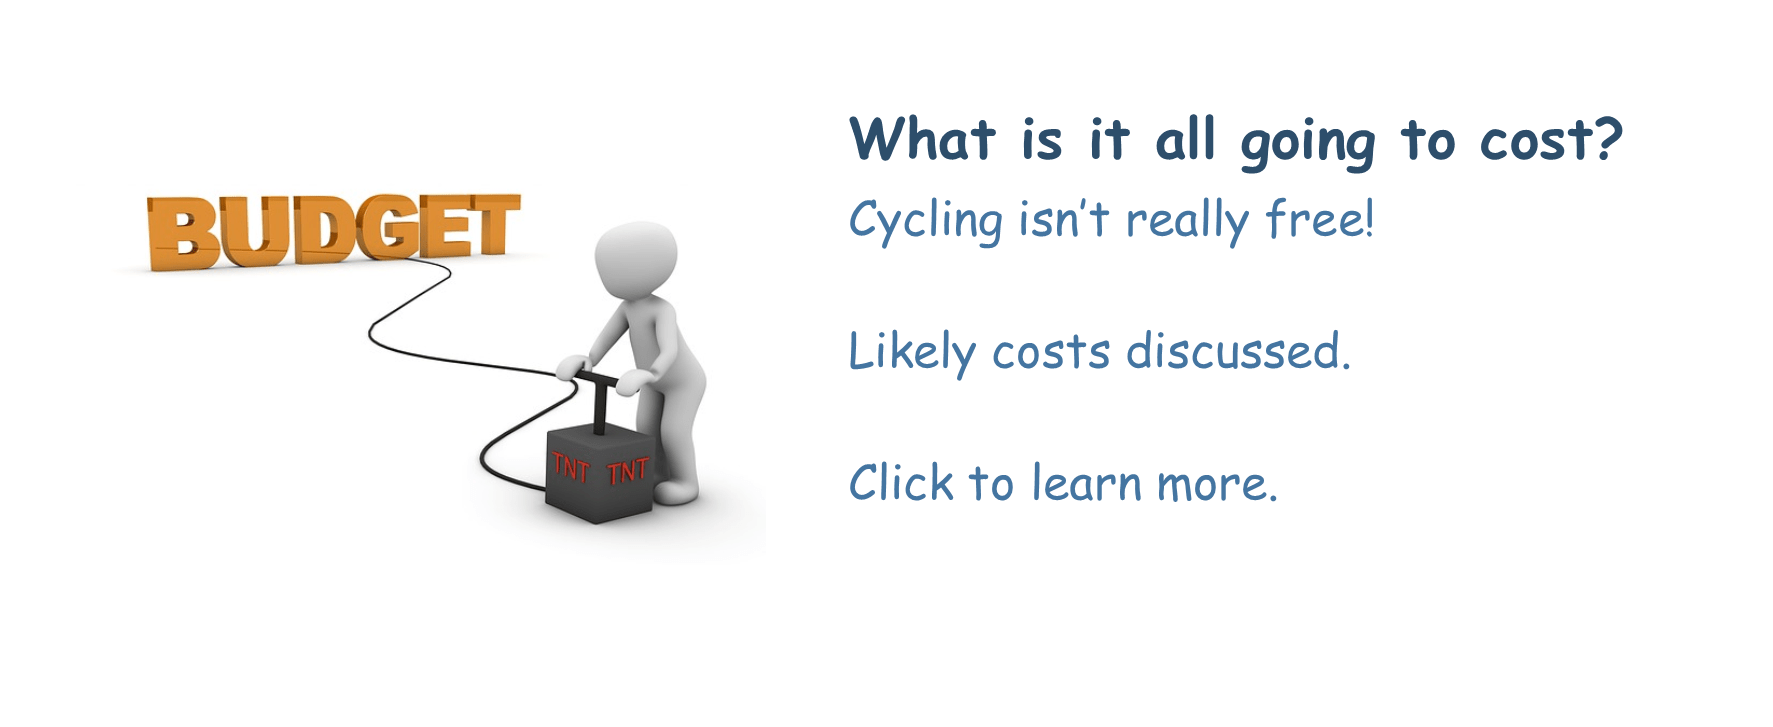 Lands End to John O Groats Cycle Route Guide Slider Image - How much will LEJOG cost